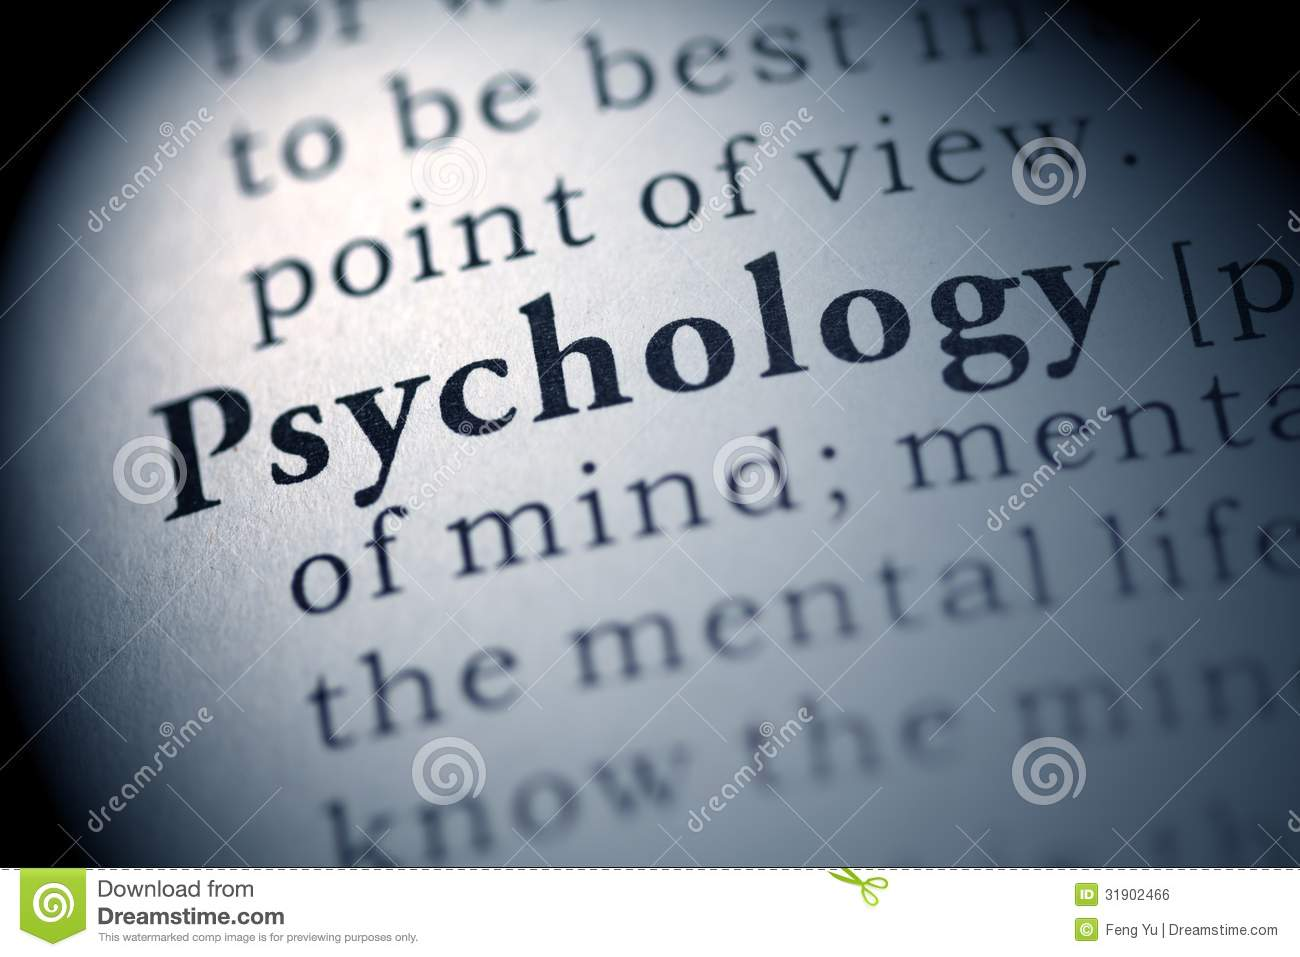 Fake Dictionary, Dictionary definition of the word Psychology.